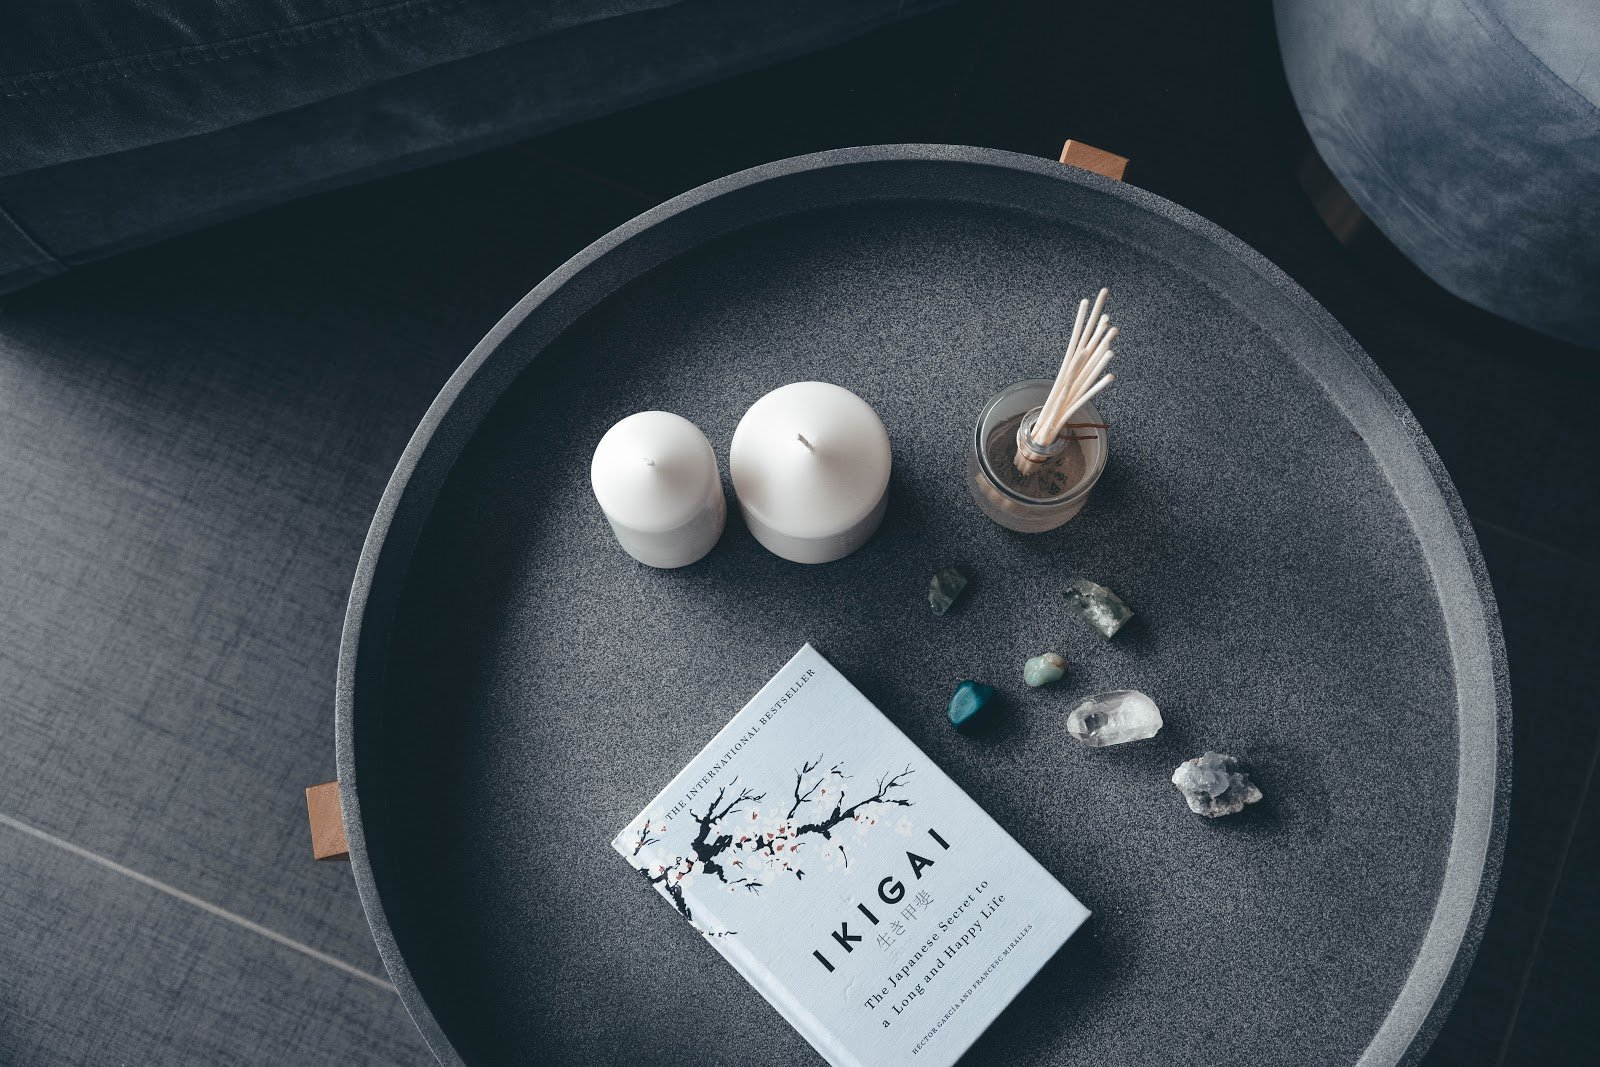 ikigai book on tray with candles